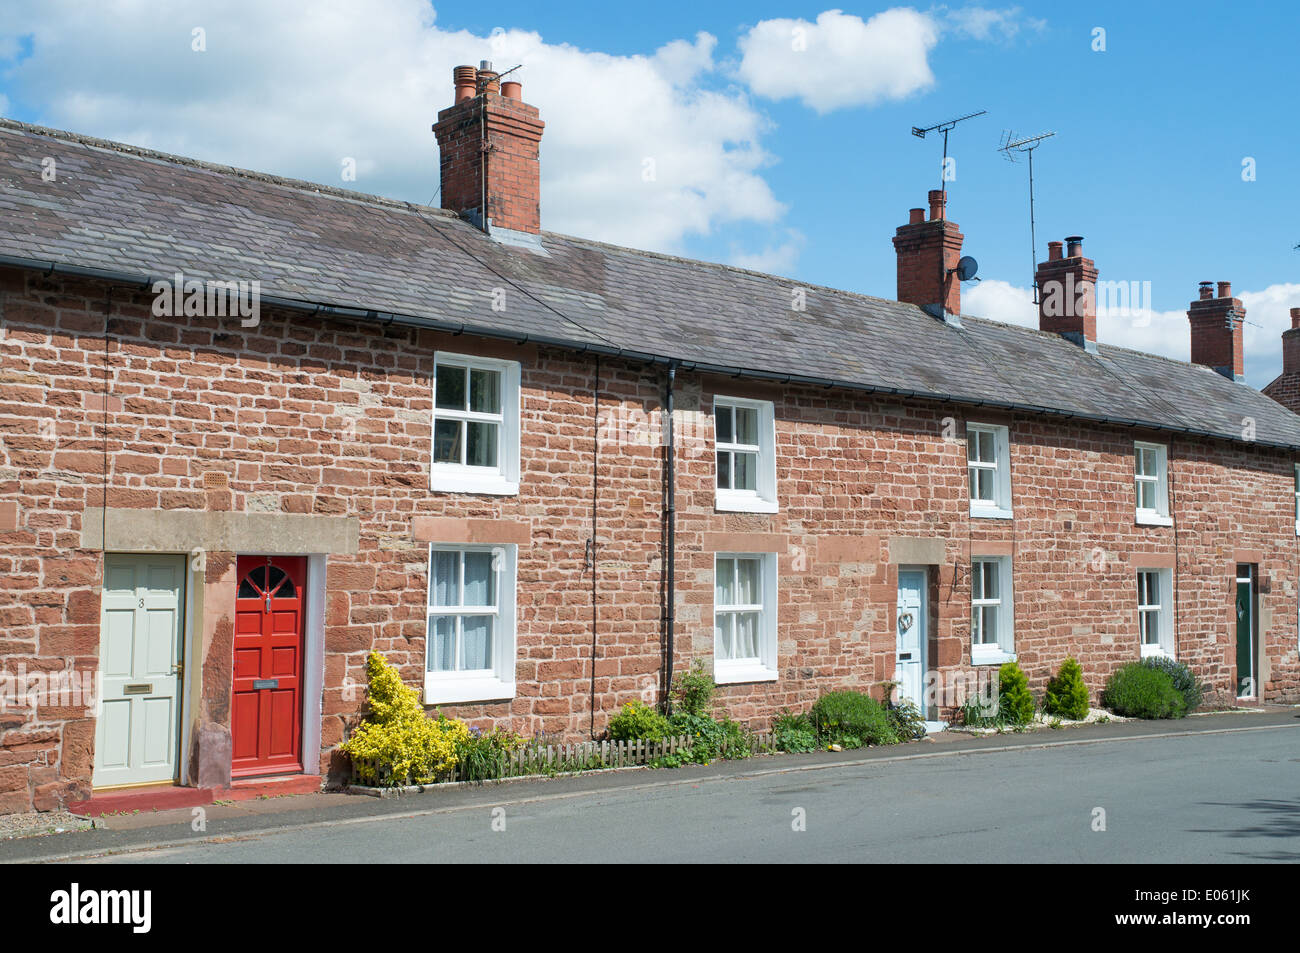 Prime Row Of Red Sandstone Terraced Houses In Brampton North West Largest Home Design Picture Inspirations Pitcheantrous